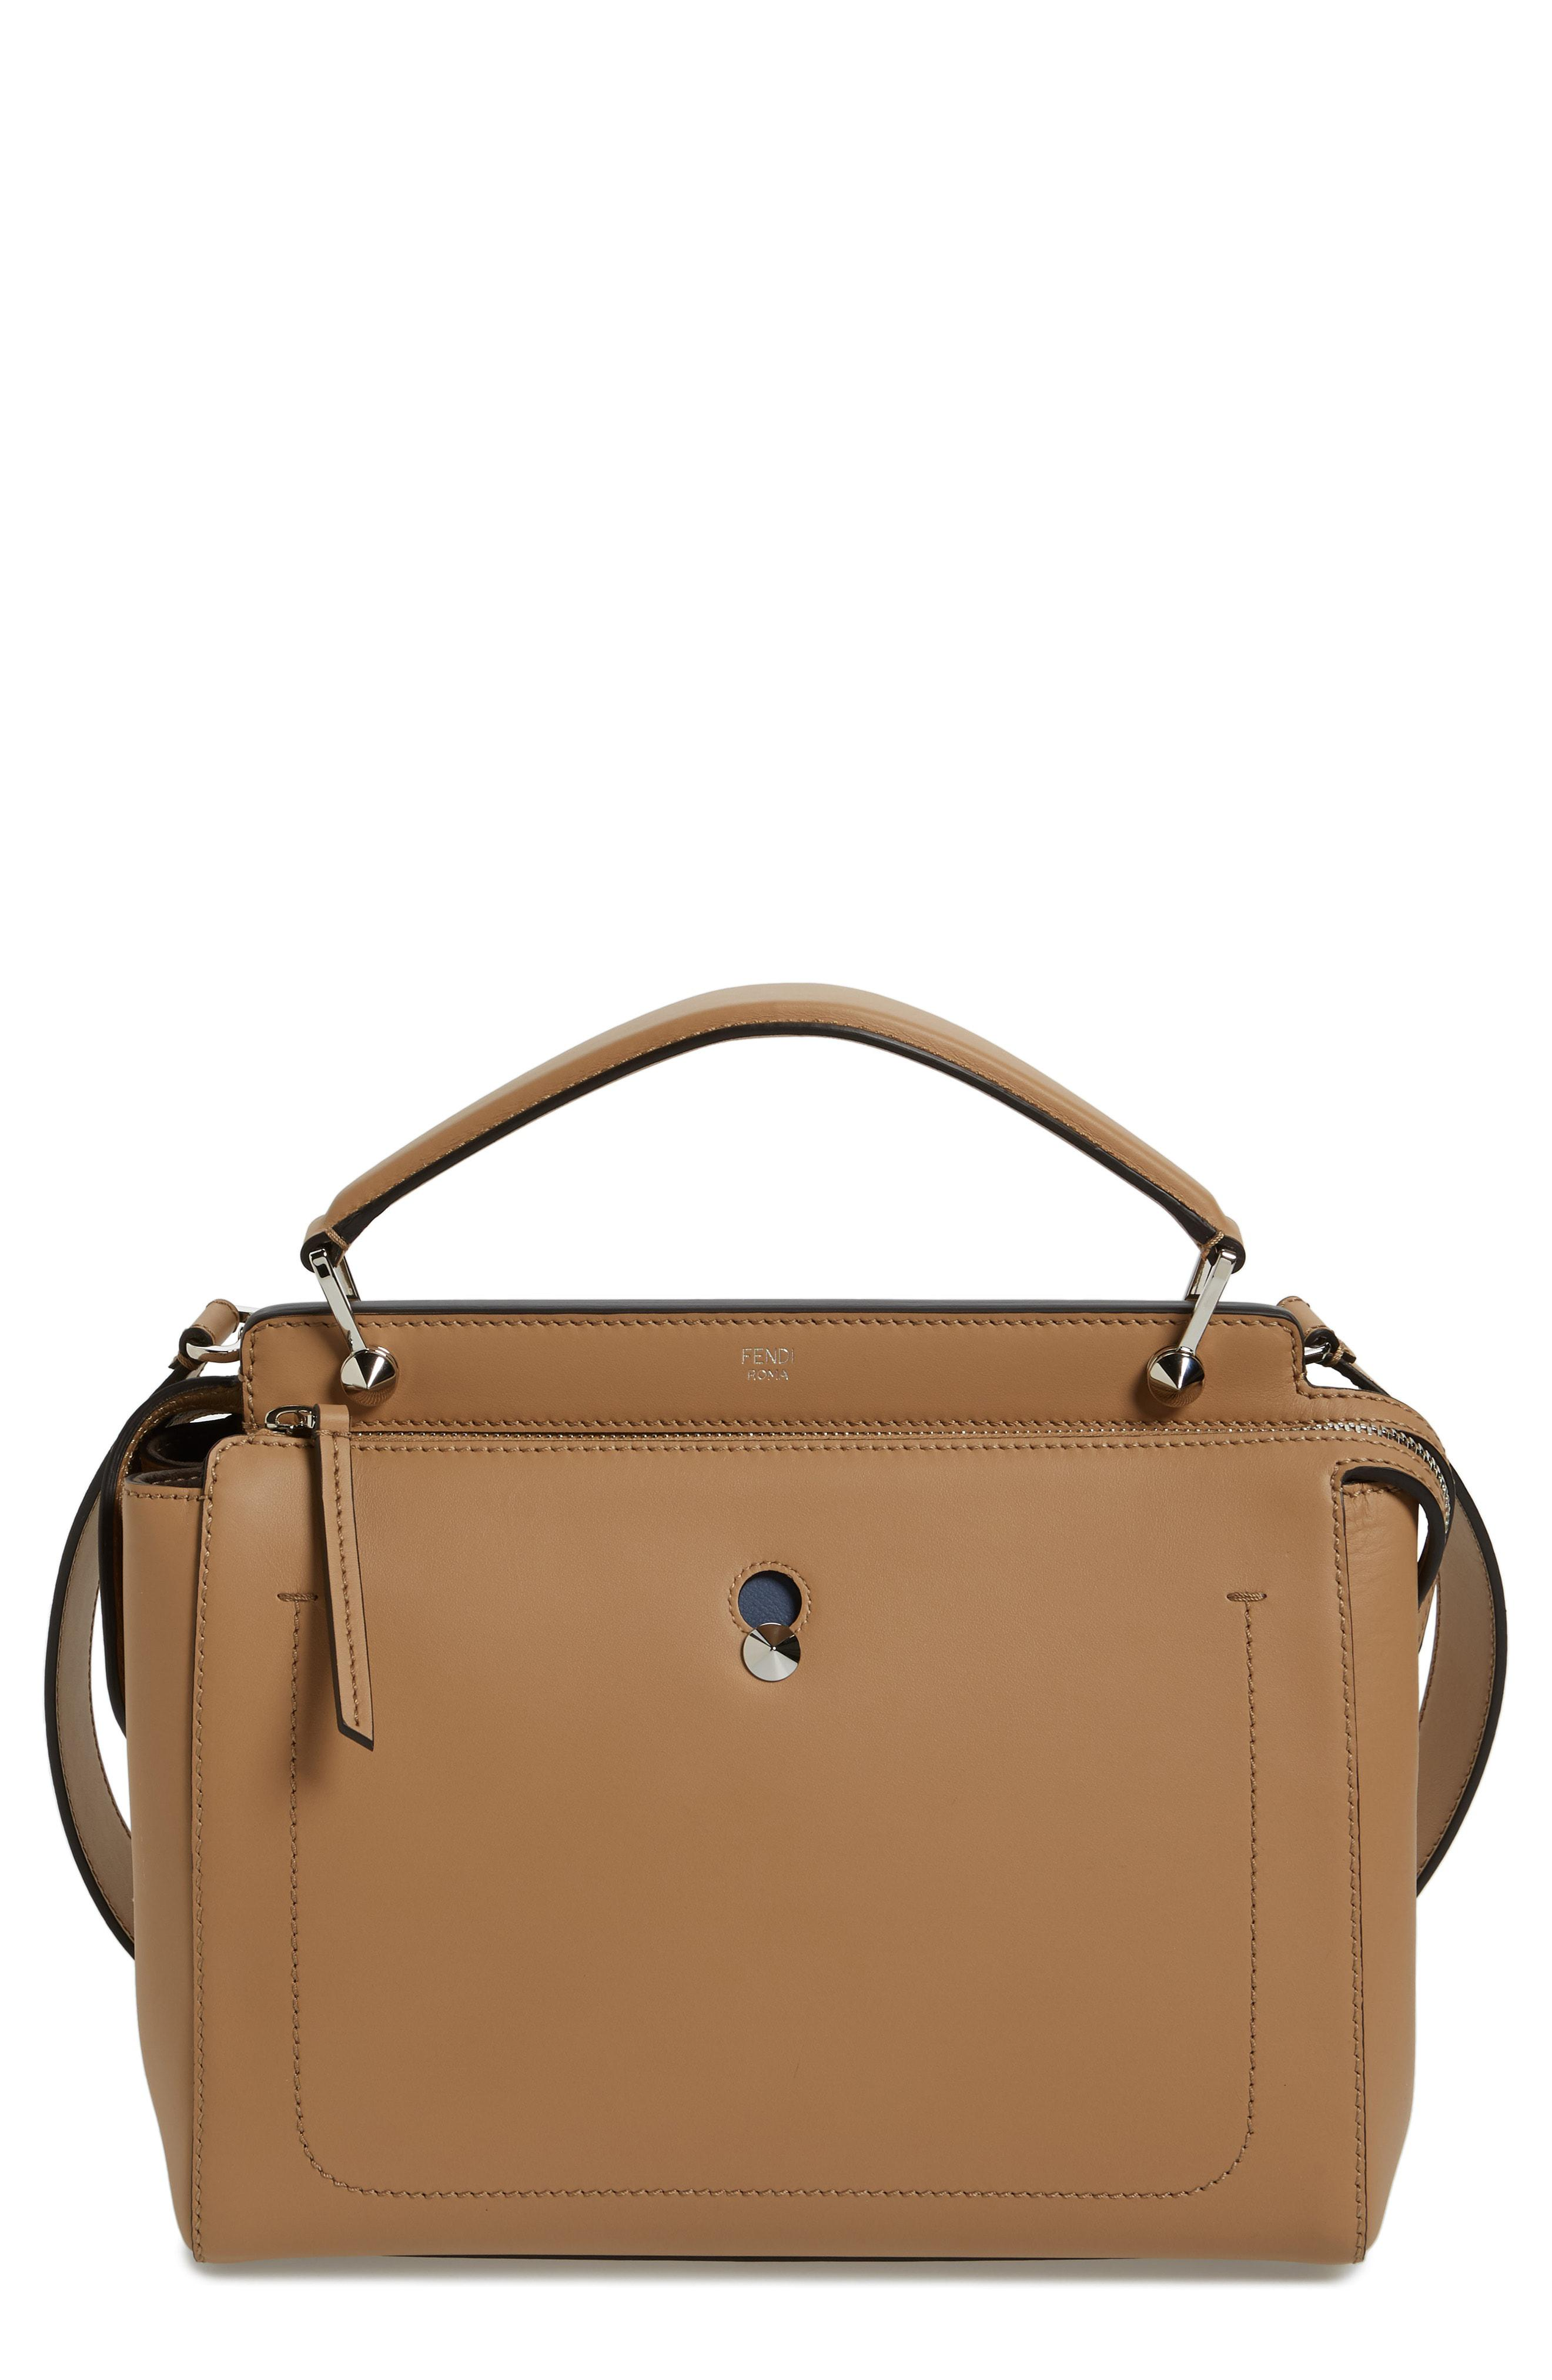 Lyst - Fendi  dotcom  Leather Satchel in Brown